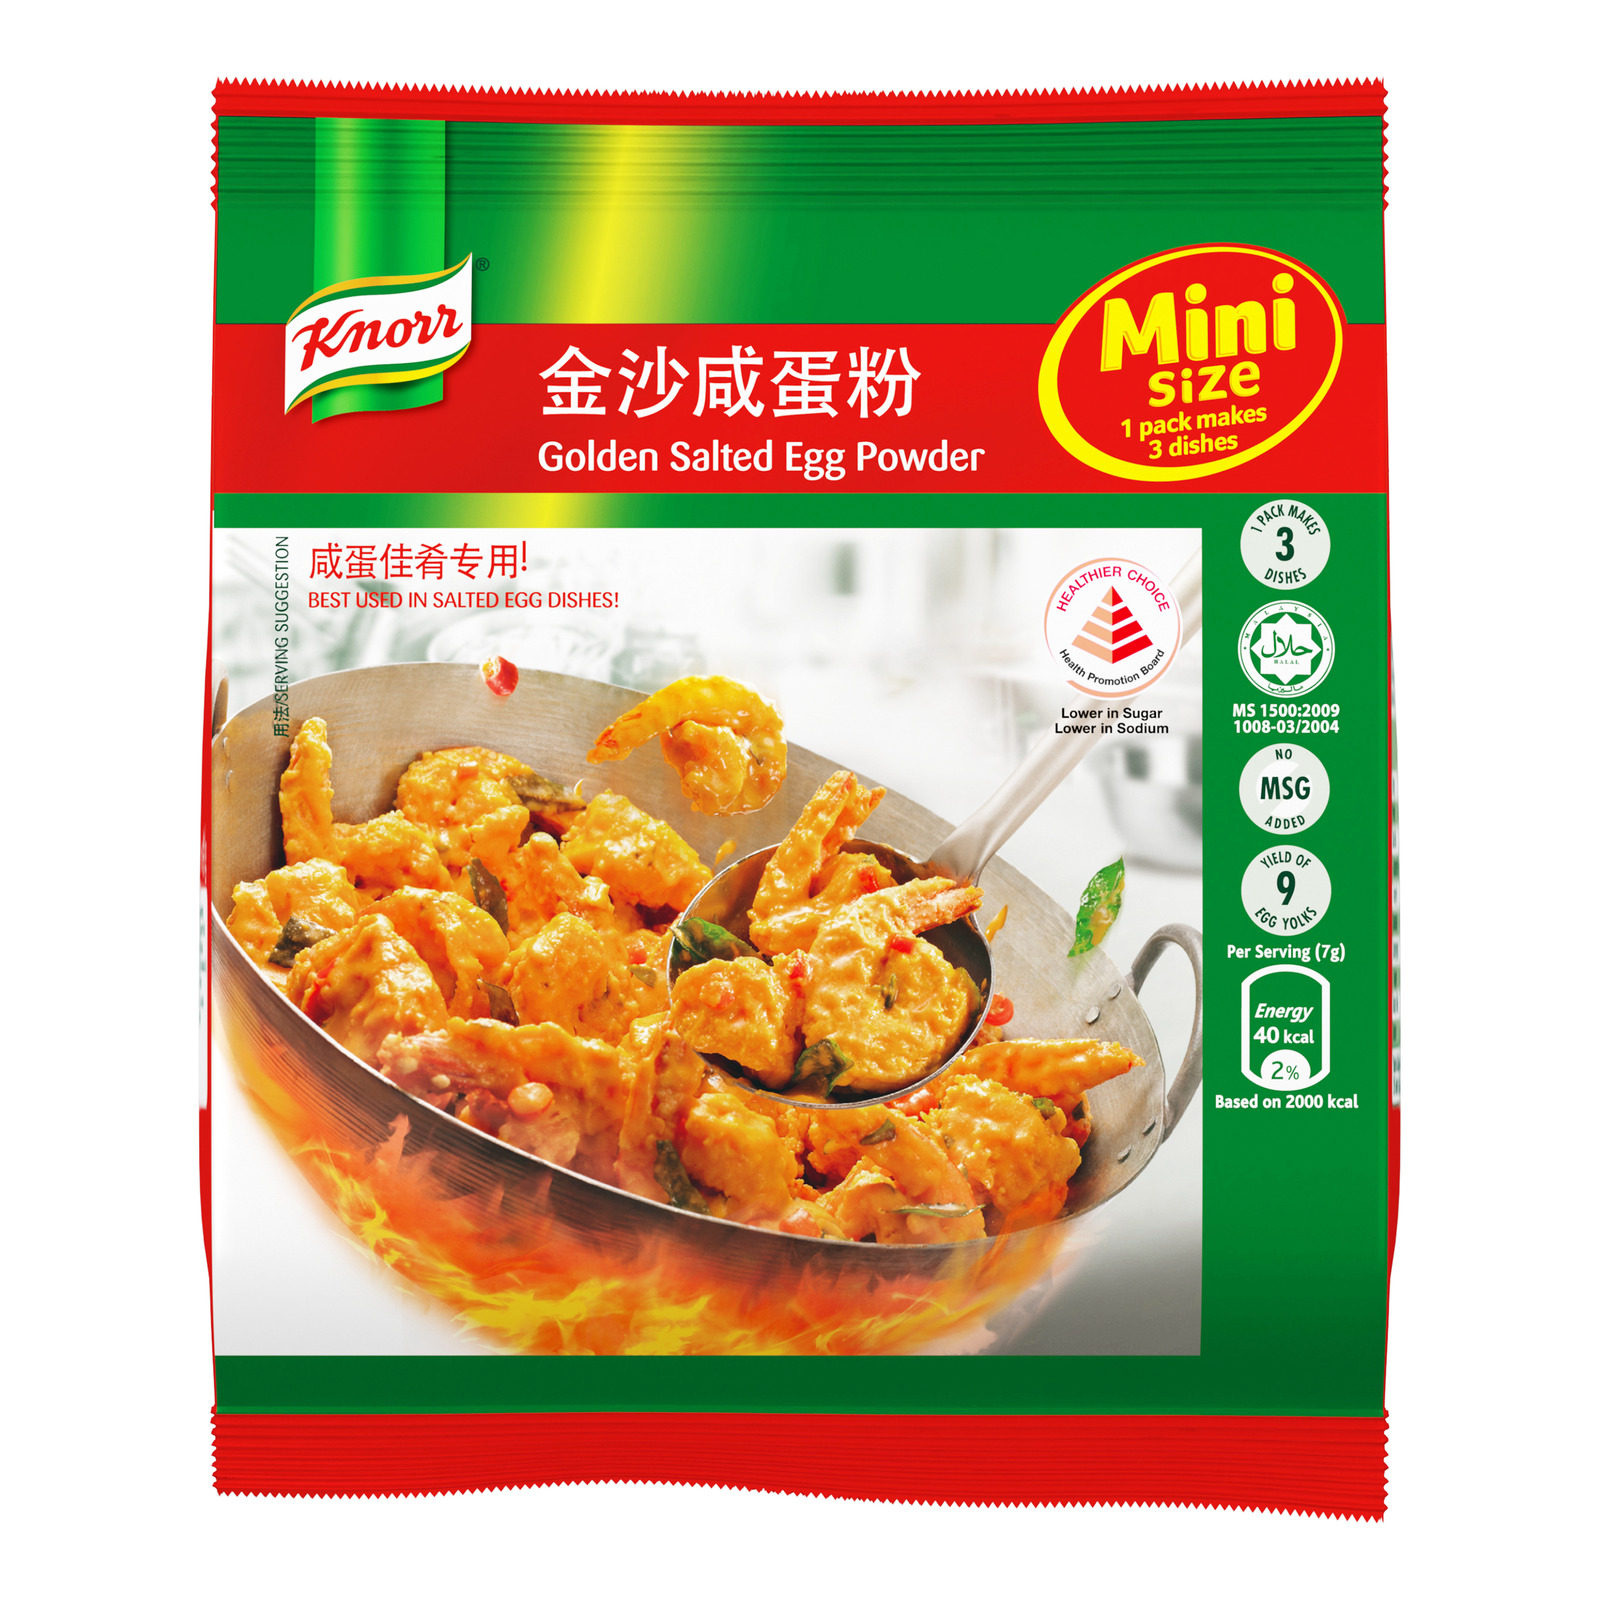 Knorr Seasoning Powder - Golden Salted Egg